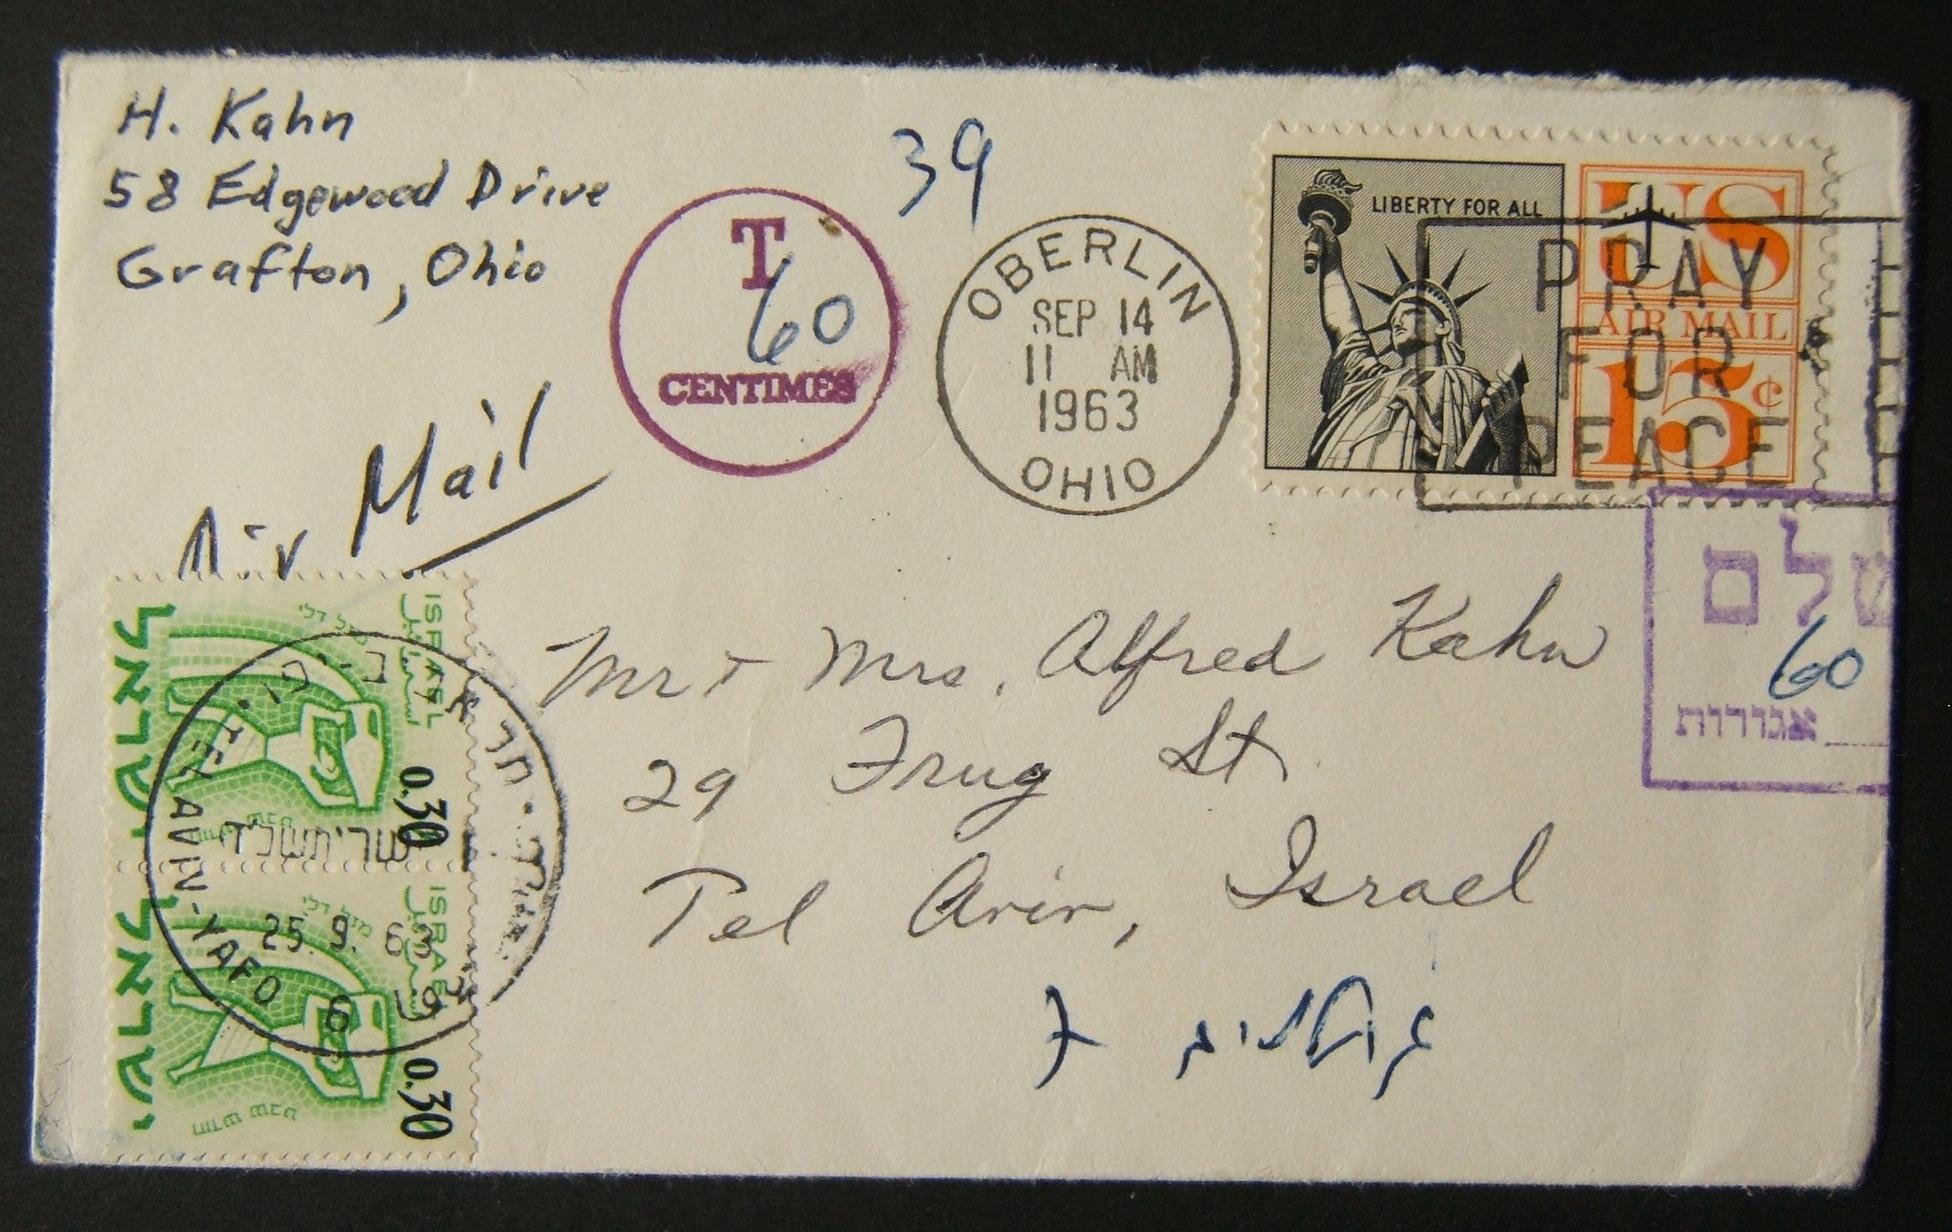 1963 incoming US taxed mail: SEP 14 1963 small airmail cover ex OHIO to TLV underfranked at $0.15 and taxed 0.60L in Israel, paid 25-9-63 using pair 0.30L 1962 ovpt'd Zodiac Ba238